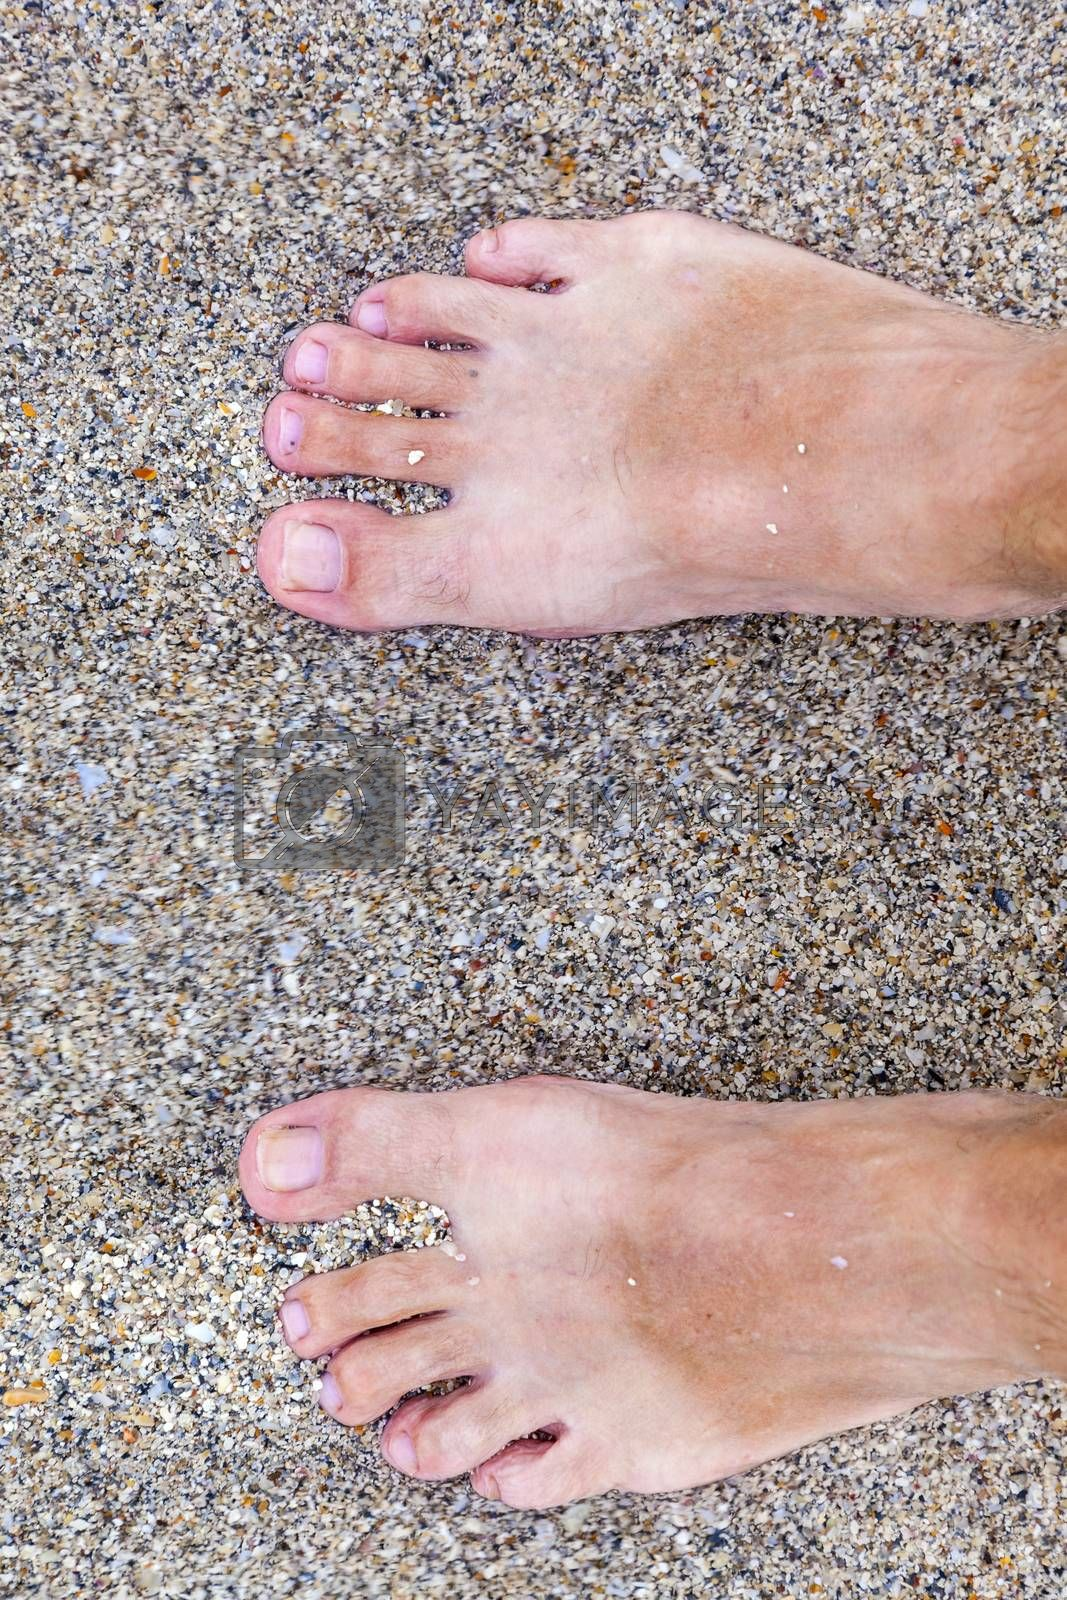 Royalty free image of feet of man at the beach by meinzahn